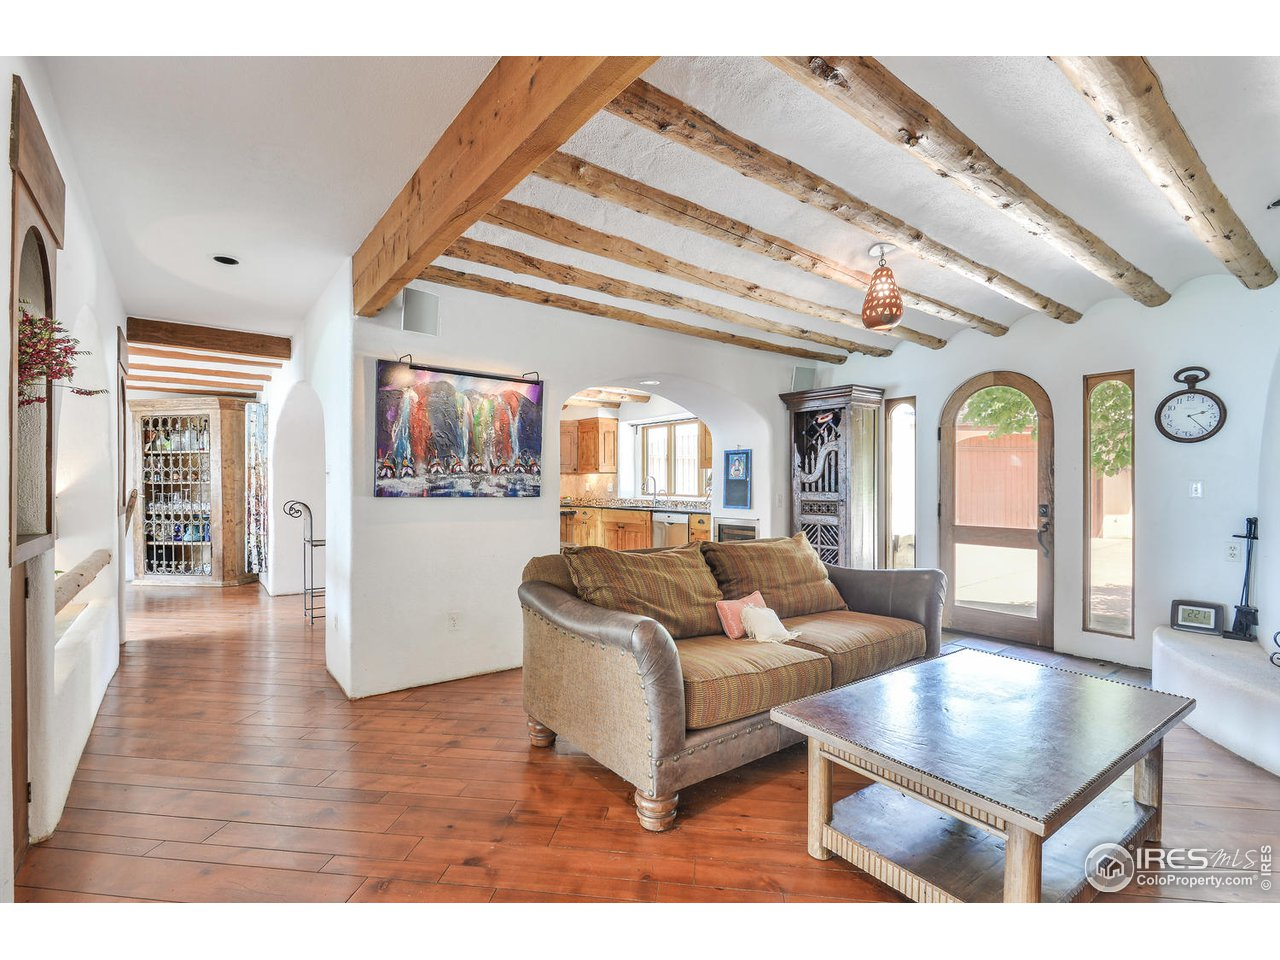 Wood beams throughout